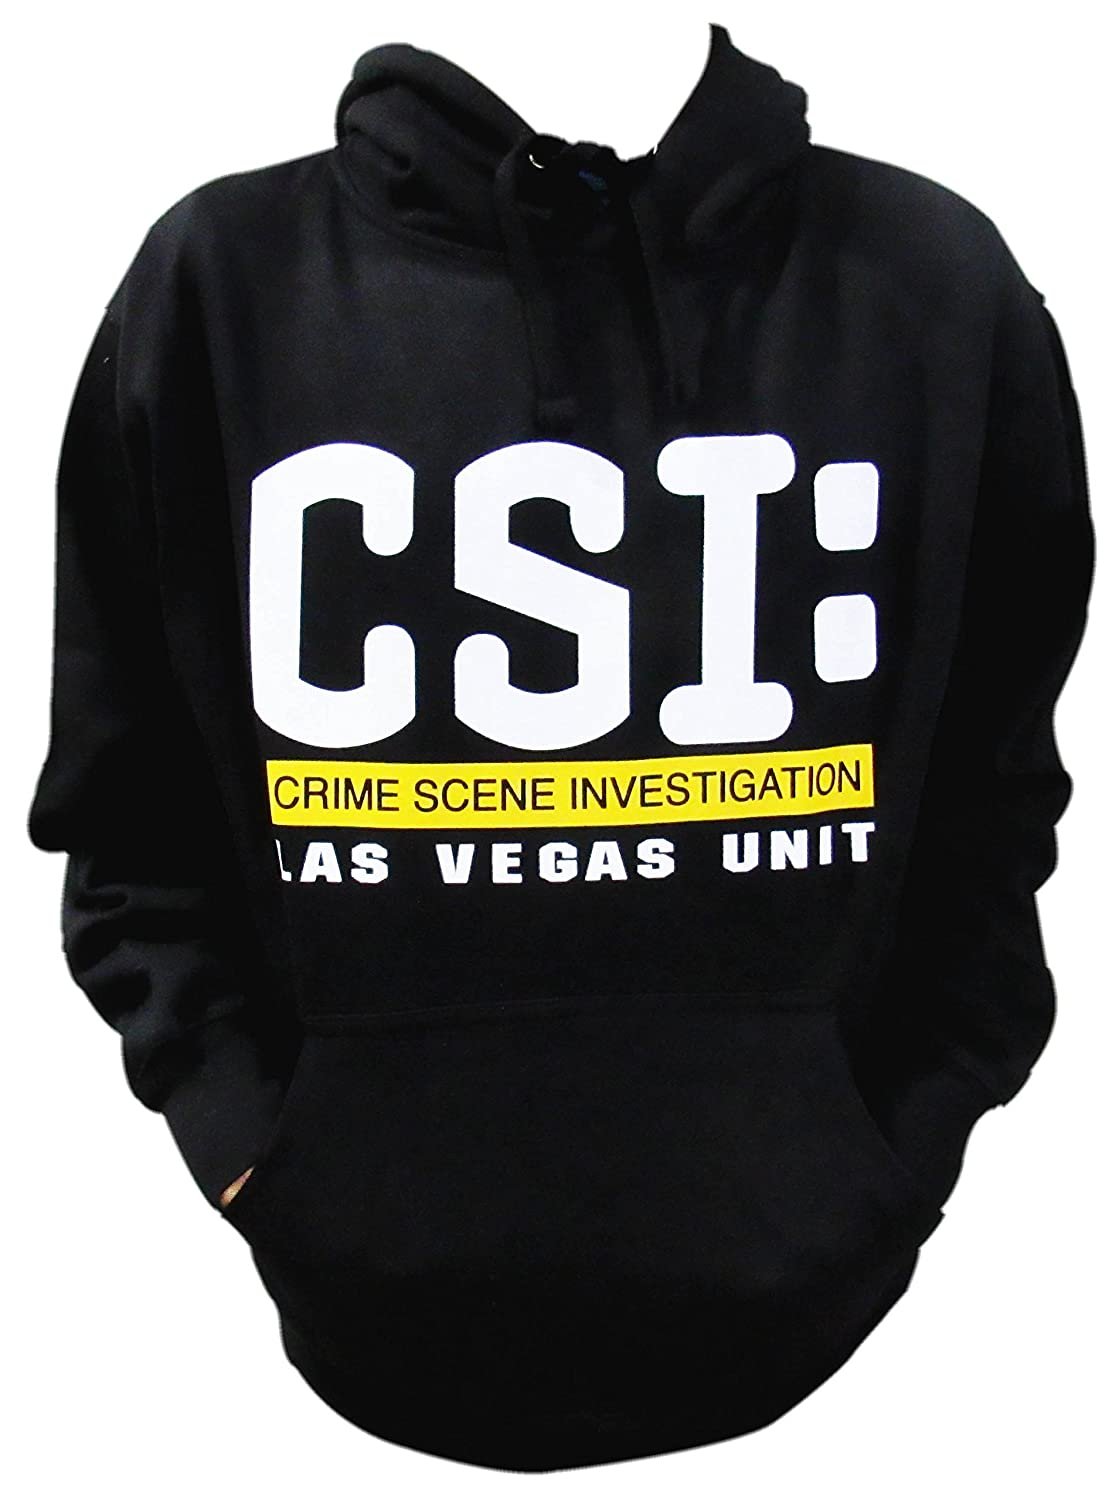 Sports and More of Las Veas LAS Vegas Crime Scene Investigation Adult Pullover Sweater